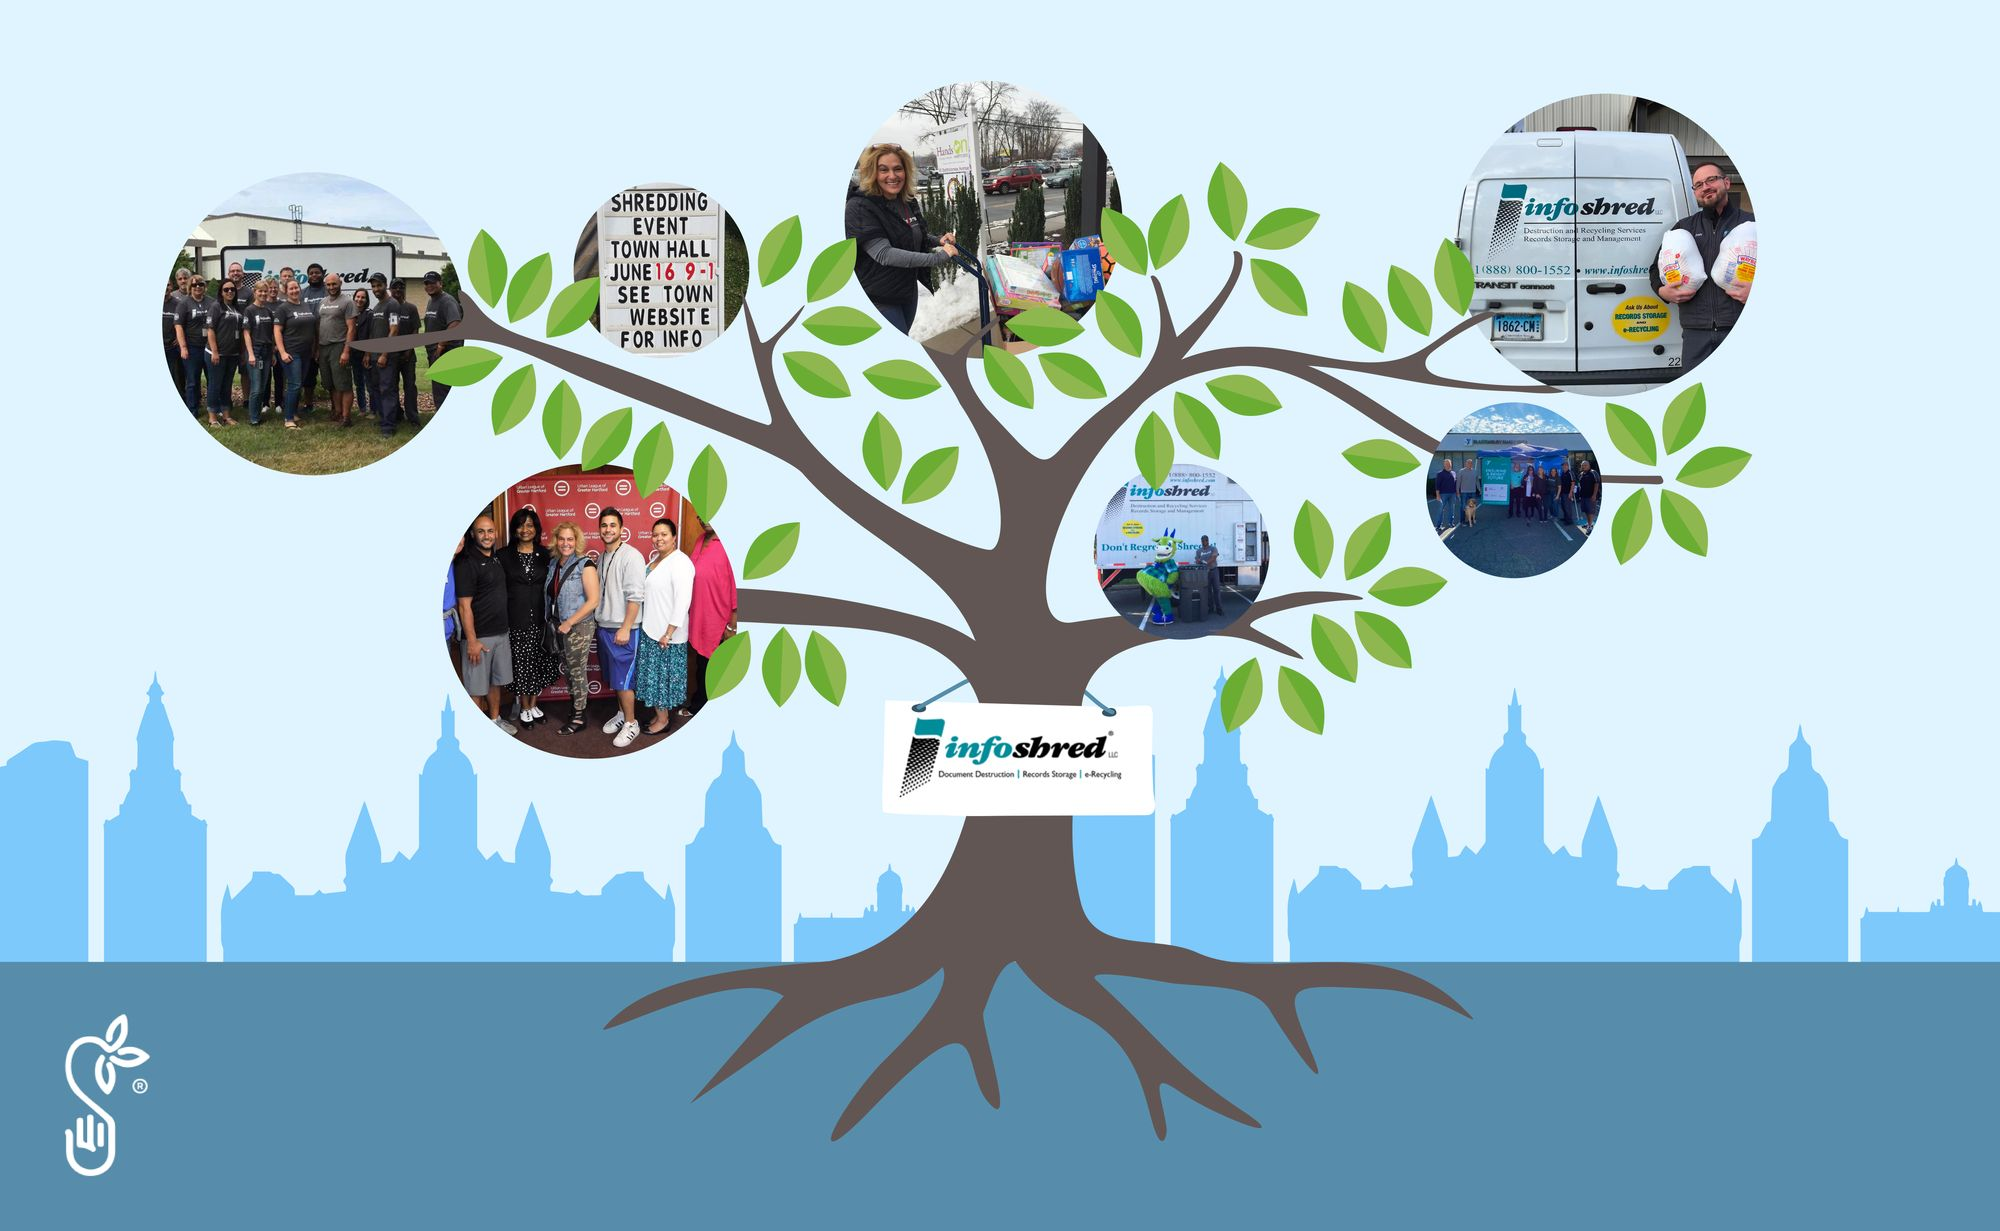 Infoshred takes its community giving to the next level for greater visibility and impact